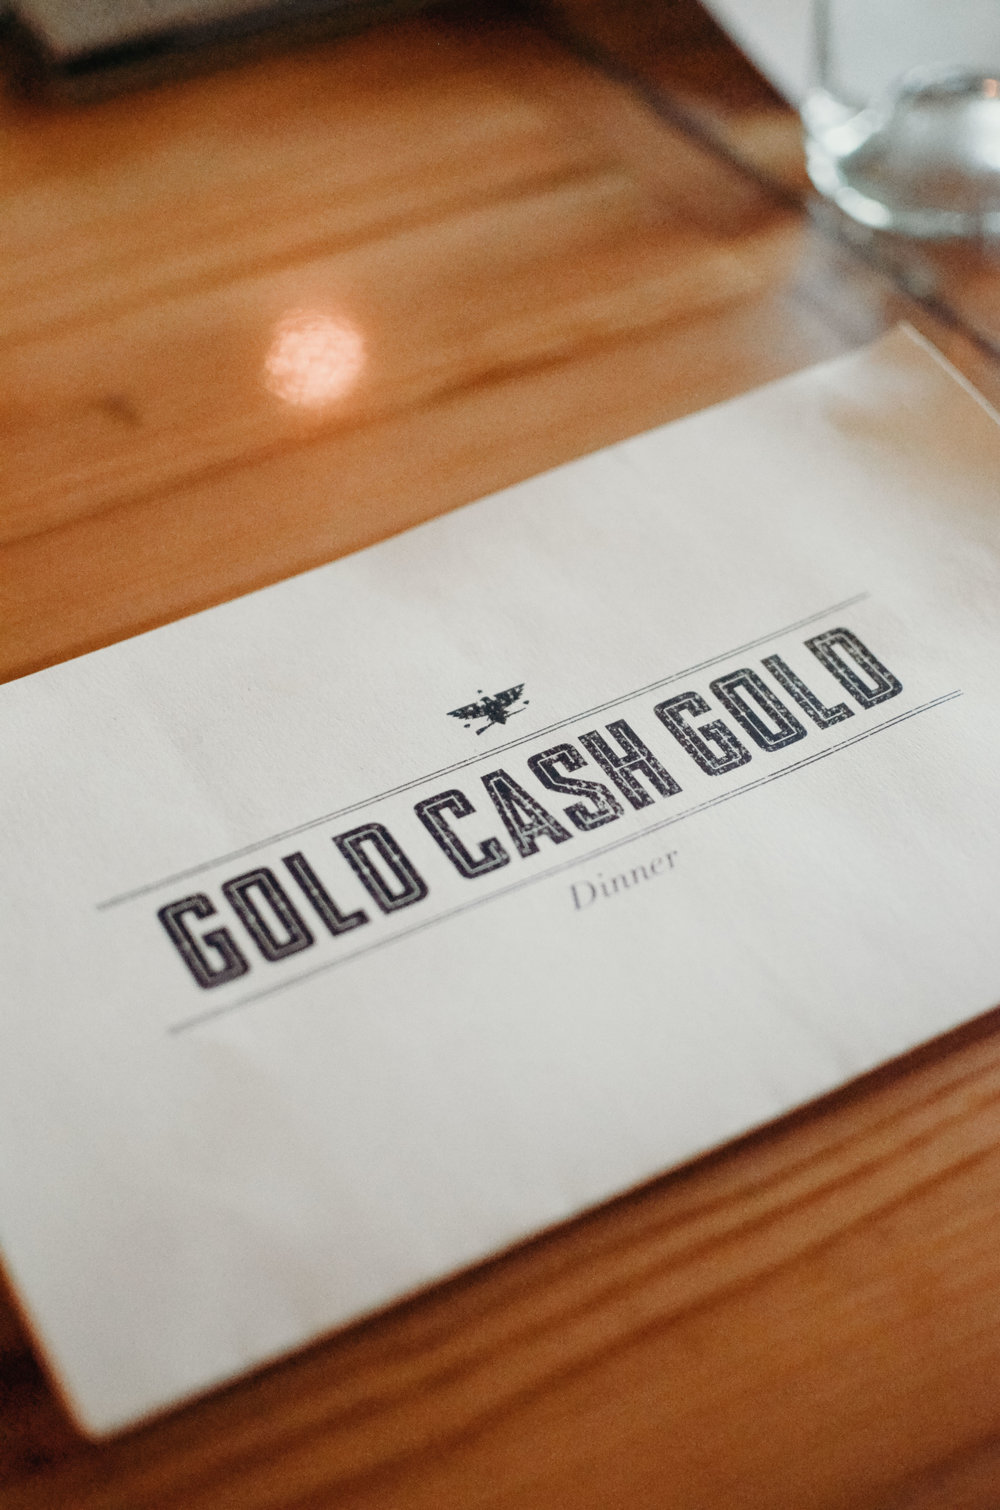 Wendling_Boyd_The_Art_of_Polishing_Off_Gold_Cash_Gold-5.jpg